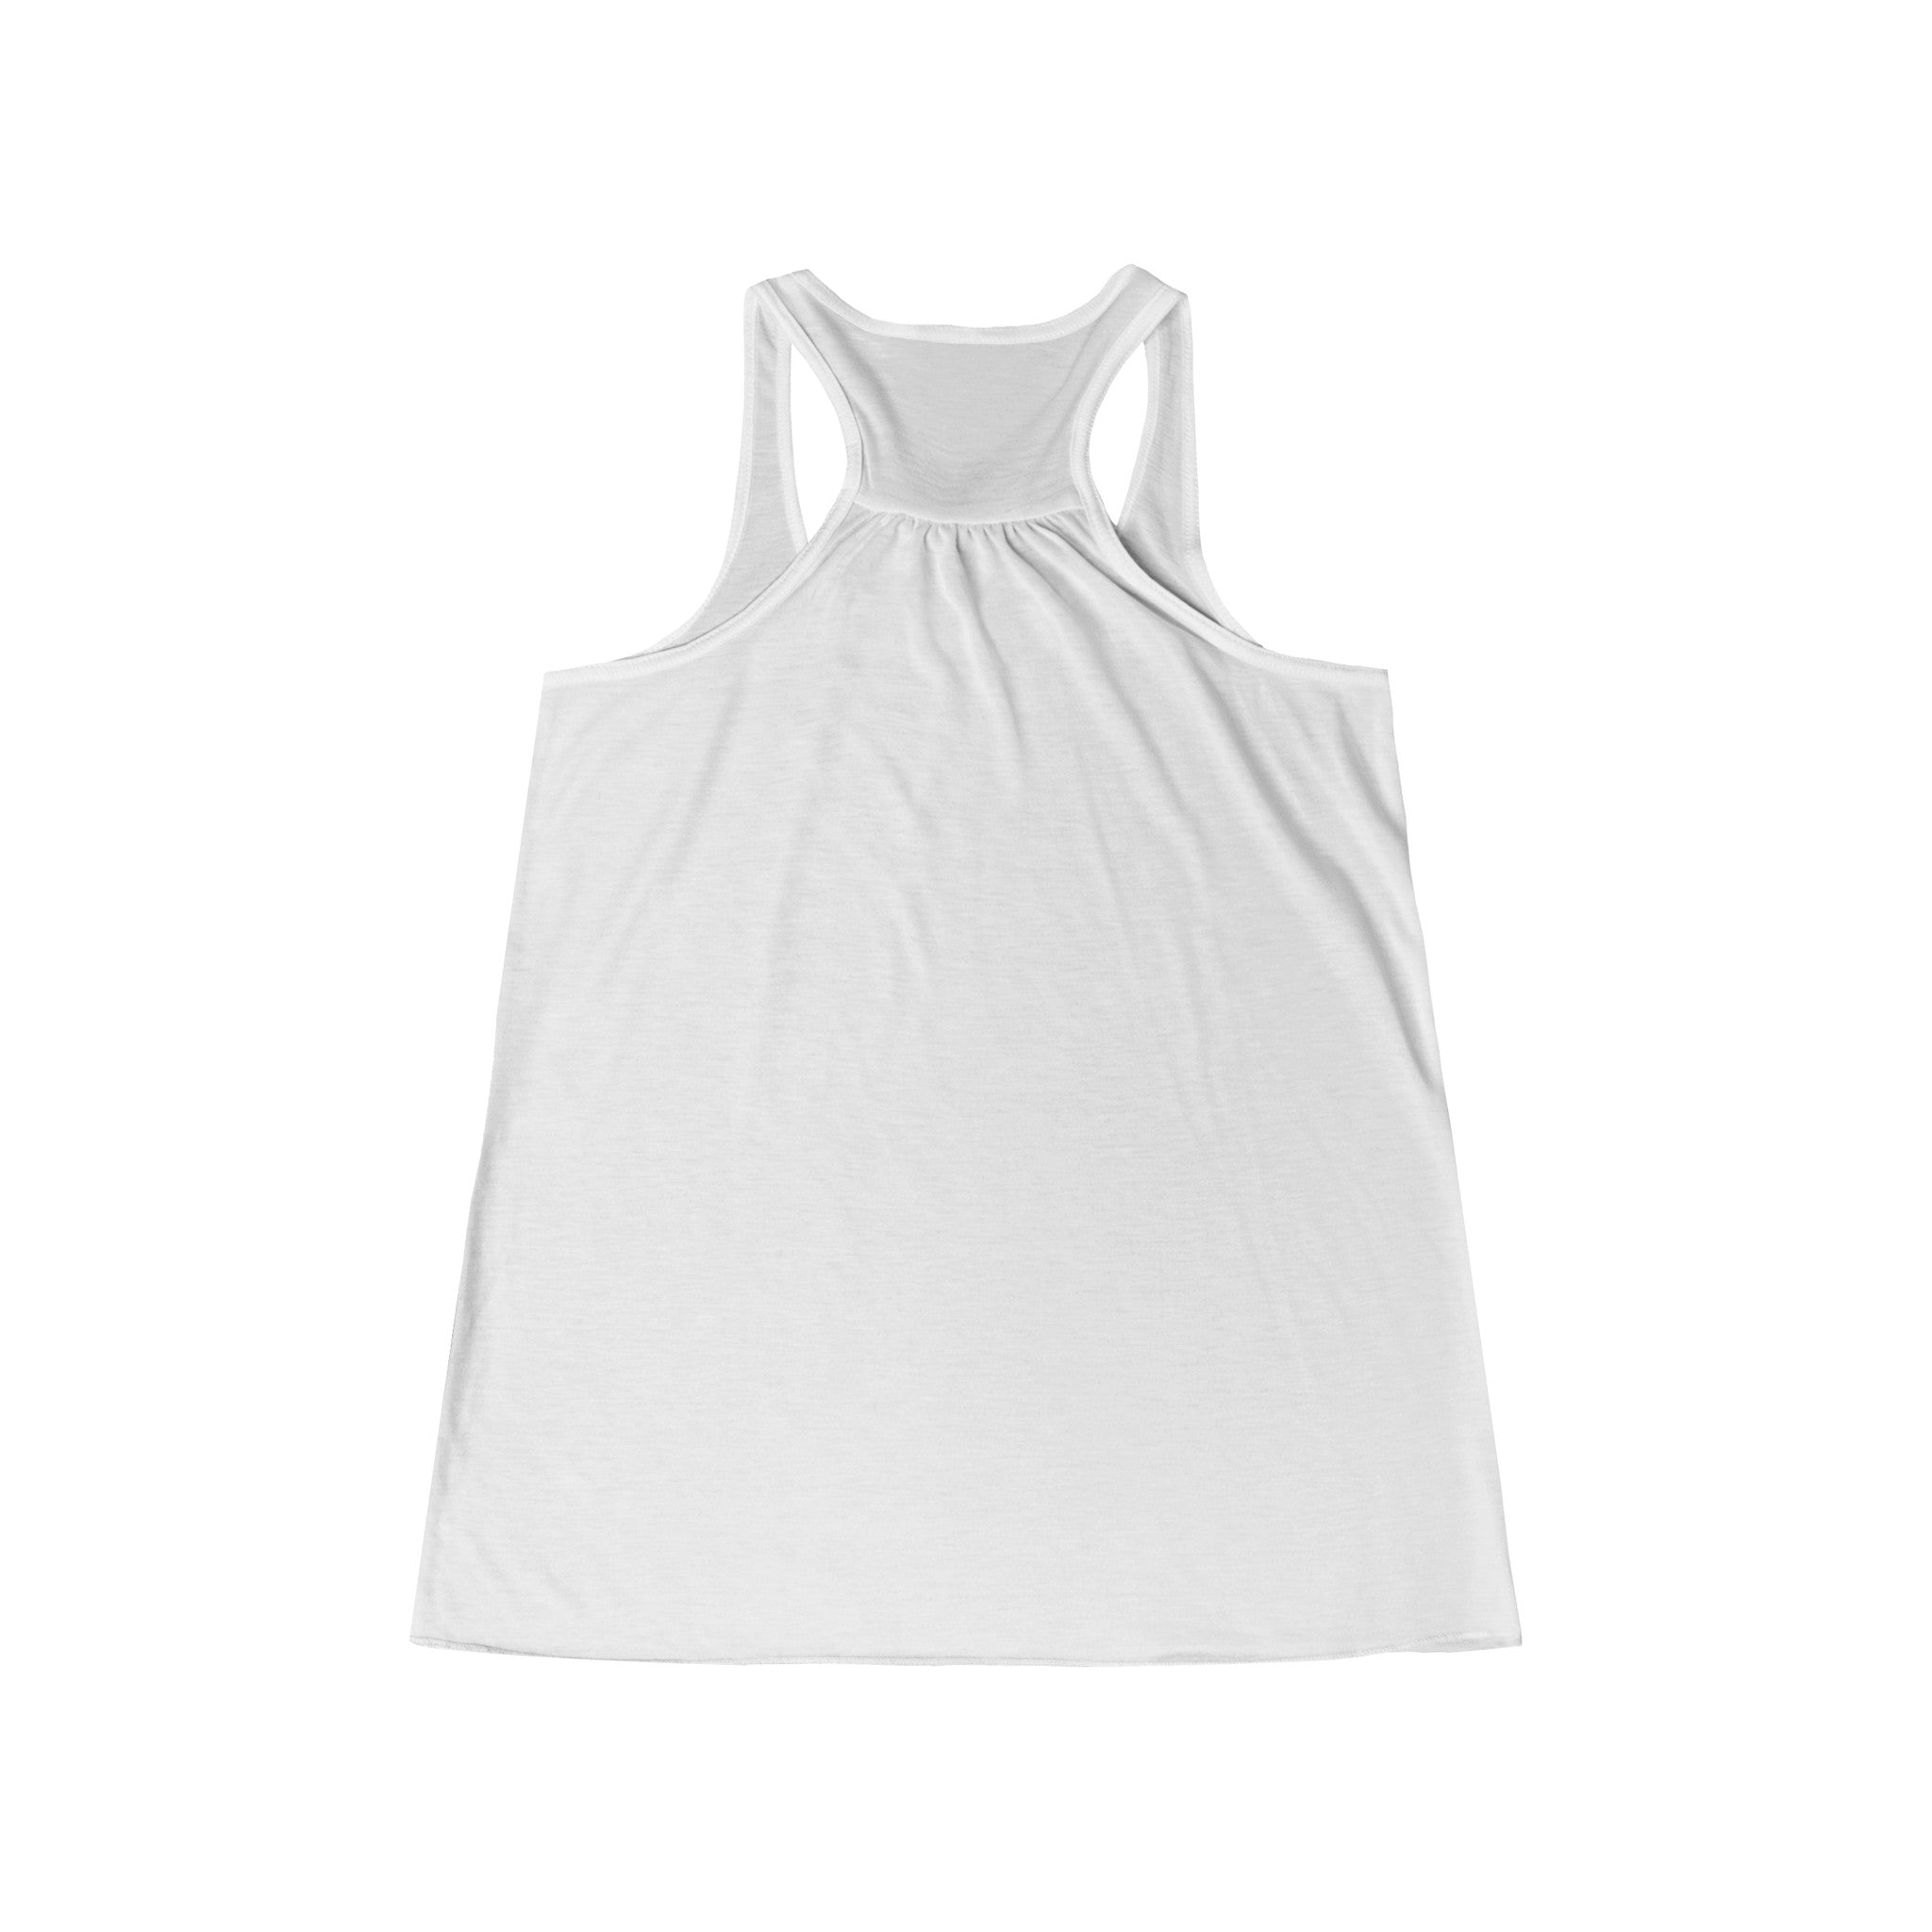 I Want: Women's Flowy Racerback Tank